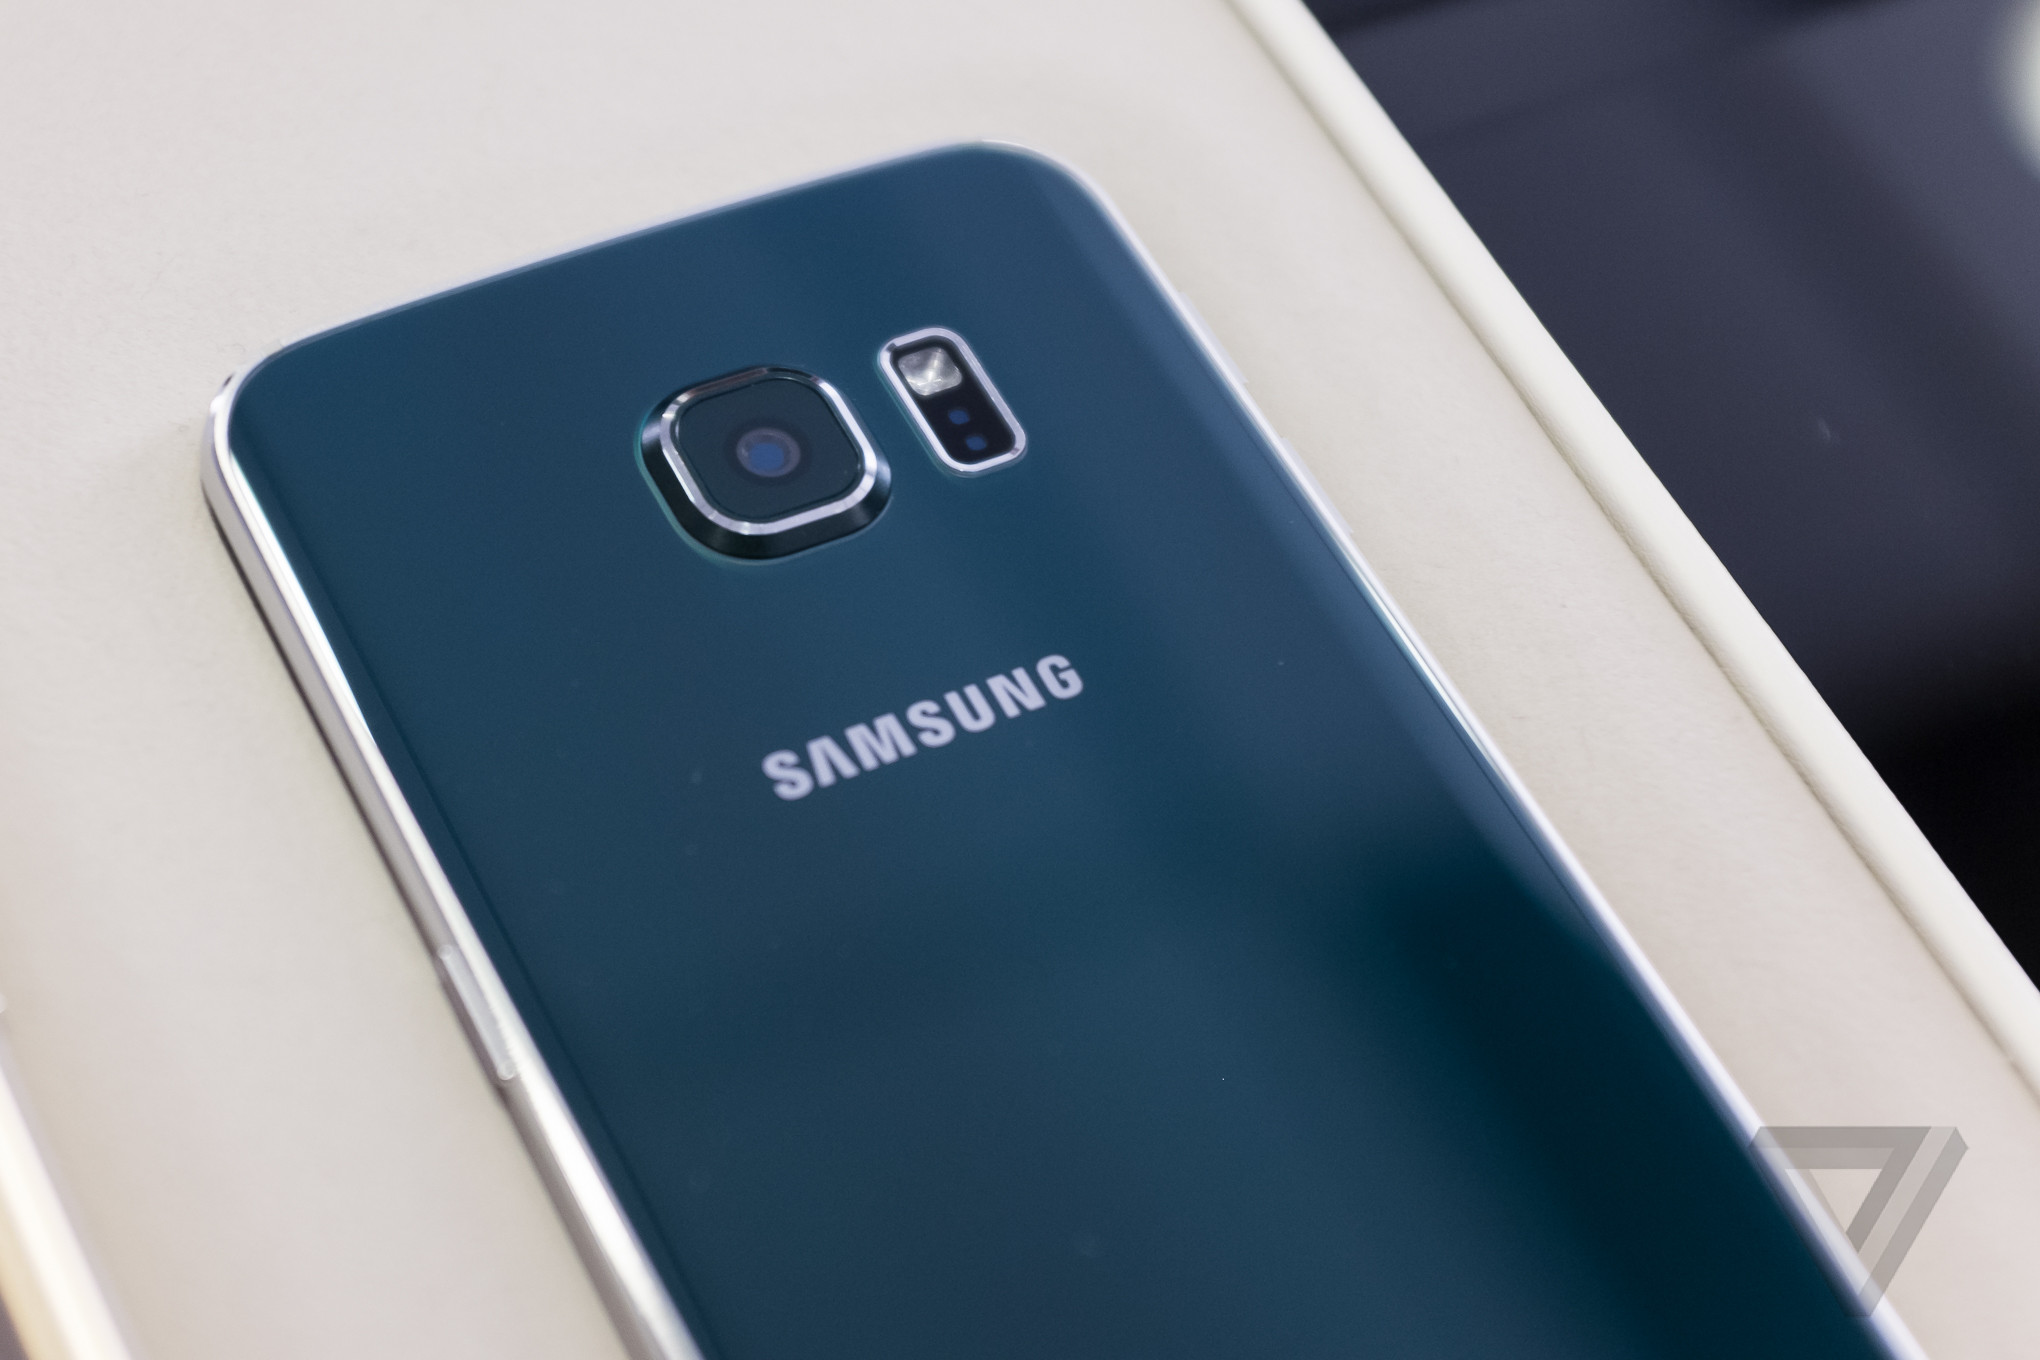 Samsungs new galaxy s6 and s6 edge put design first the verge samsung galaxy s6 and s6 edge photos sciox Gallery